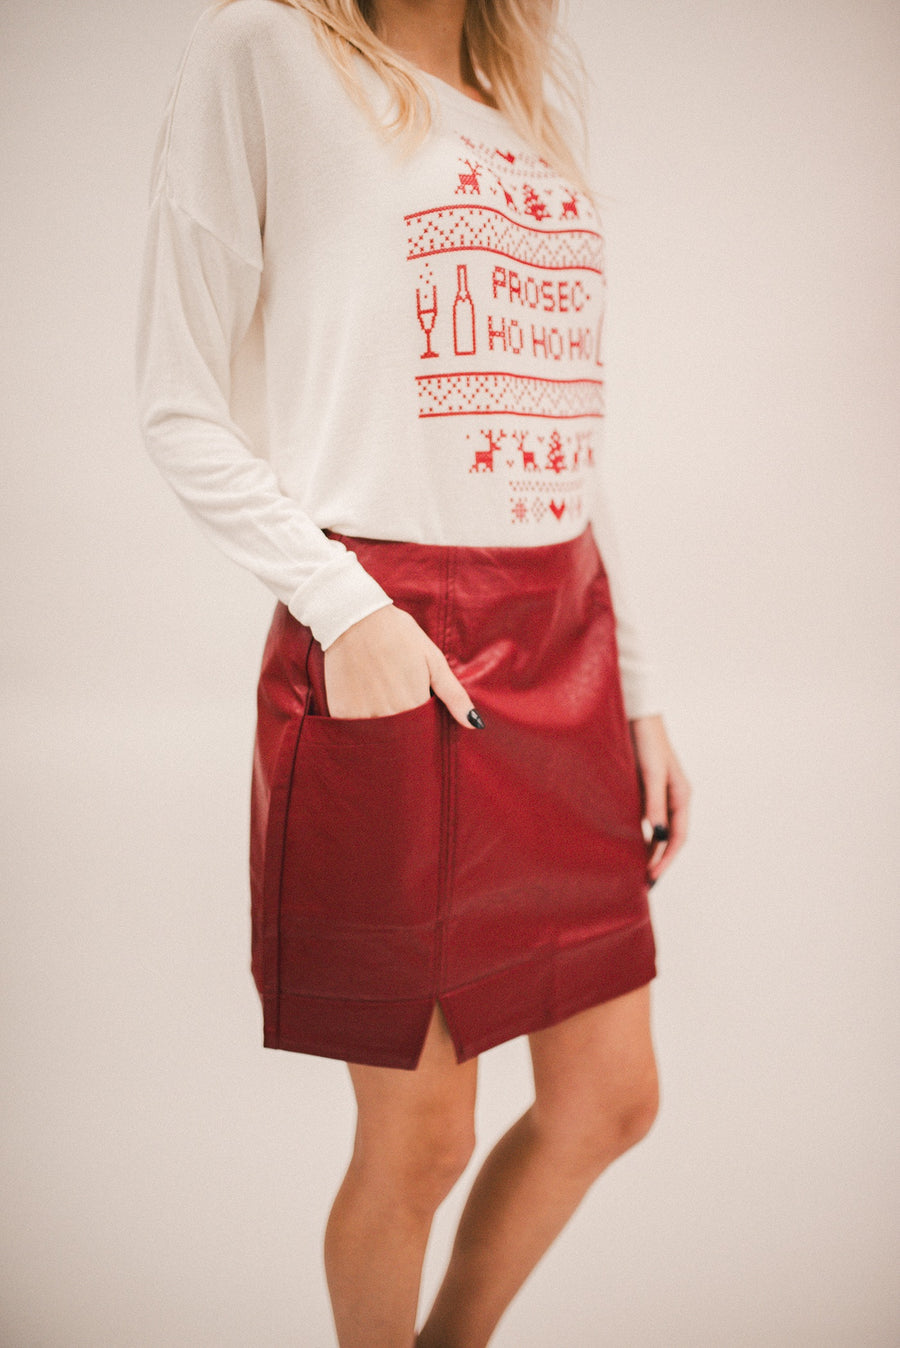 MINK PINK: ELISE MINI SKIRT-BURGUNDY